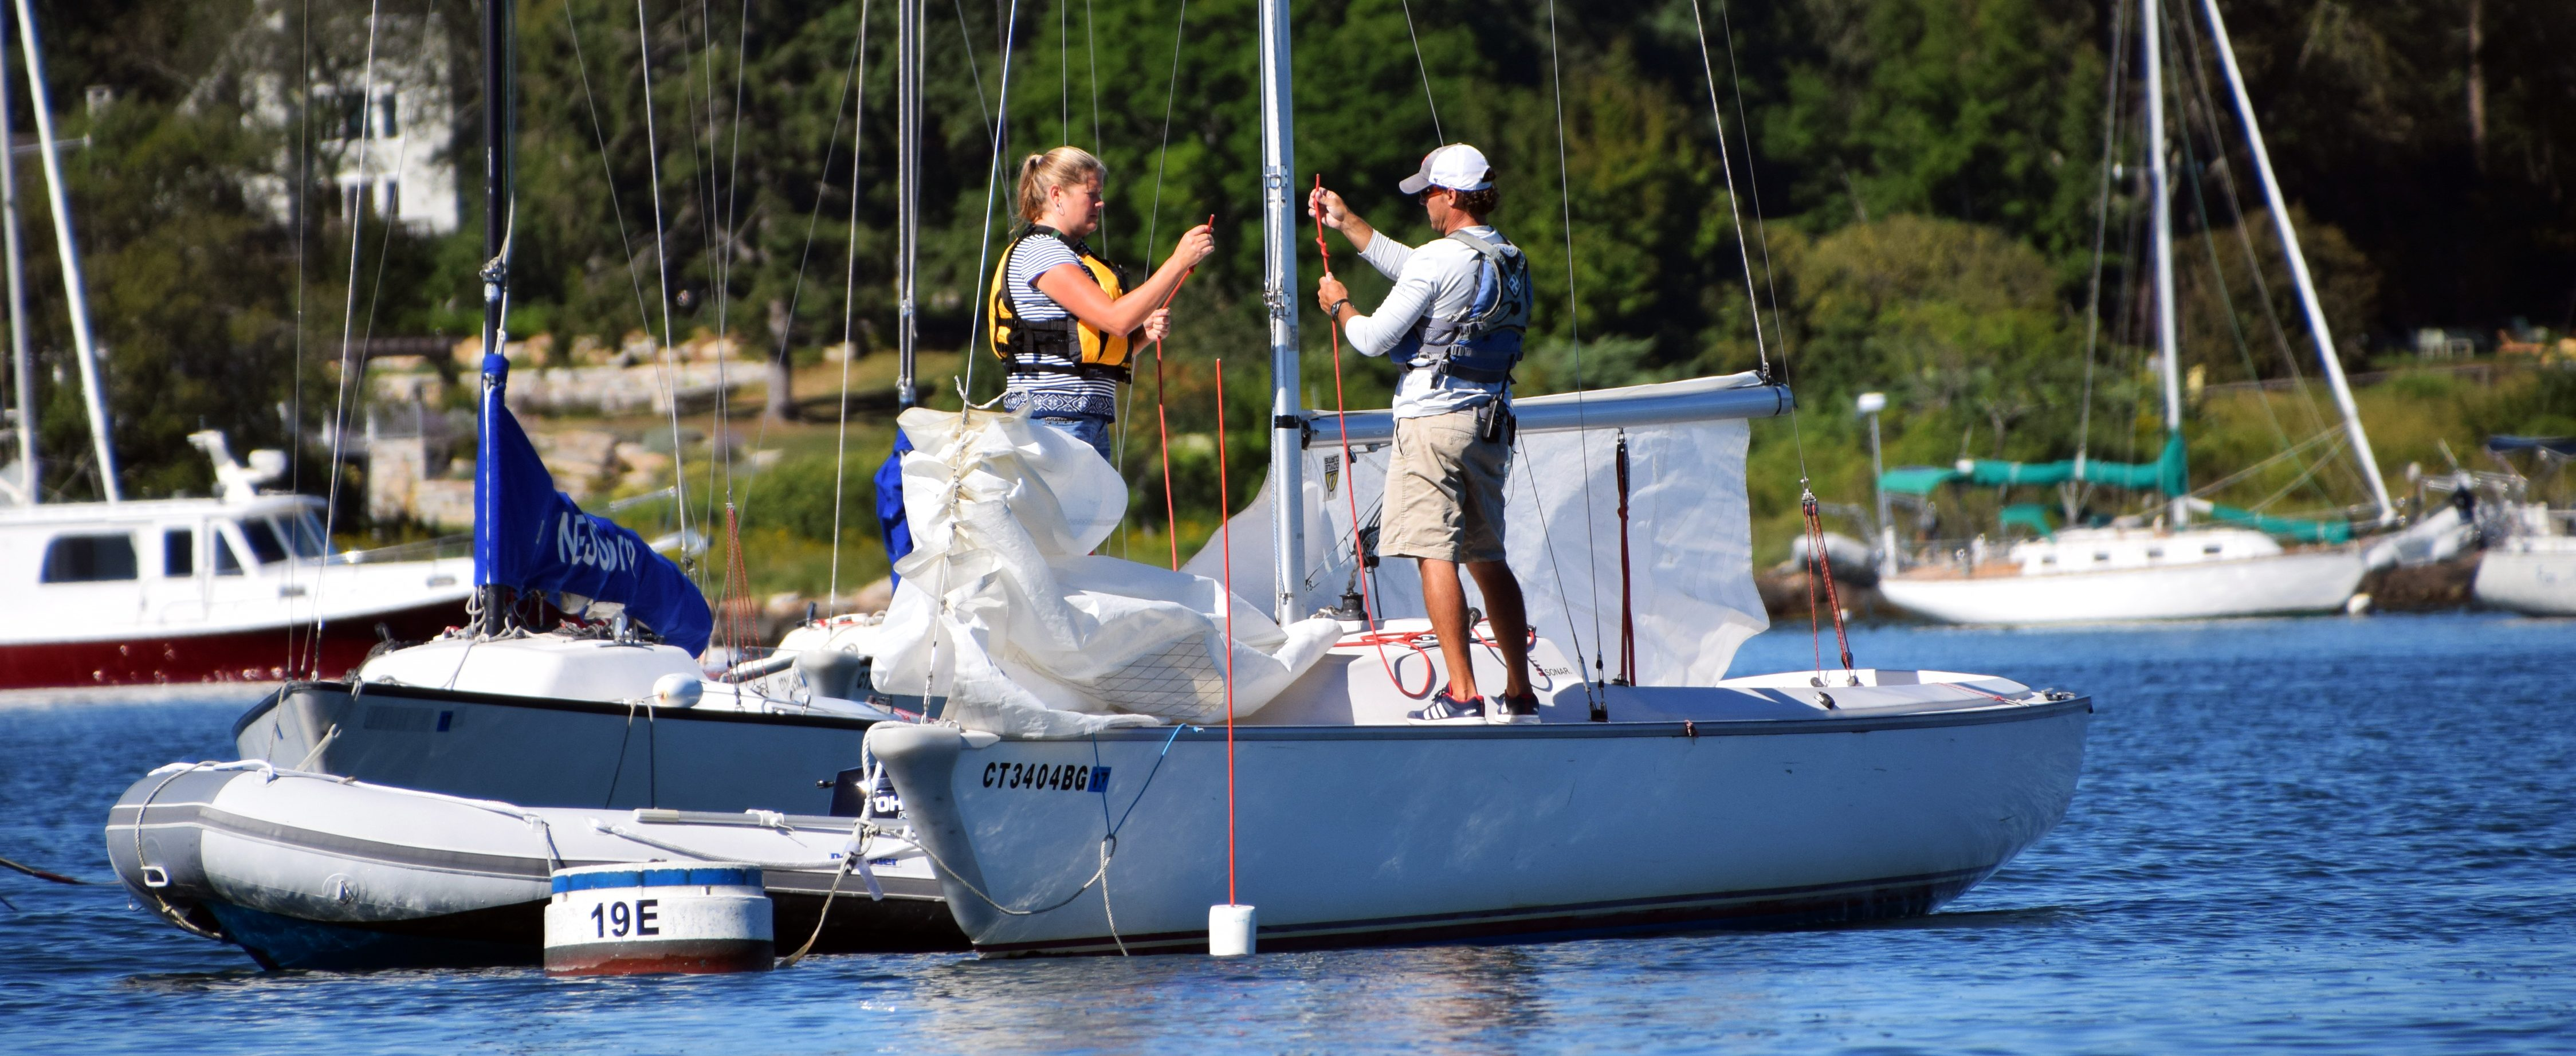 NESS Private Sailing Lessons